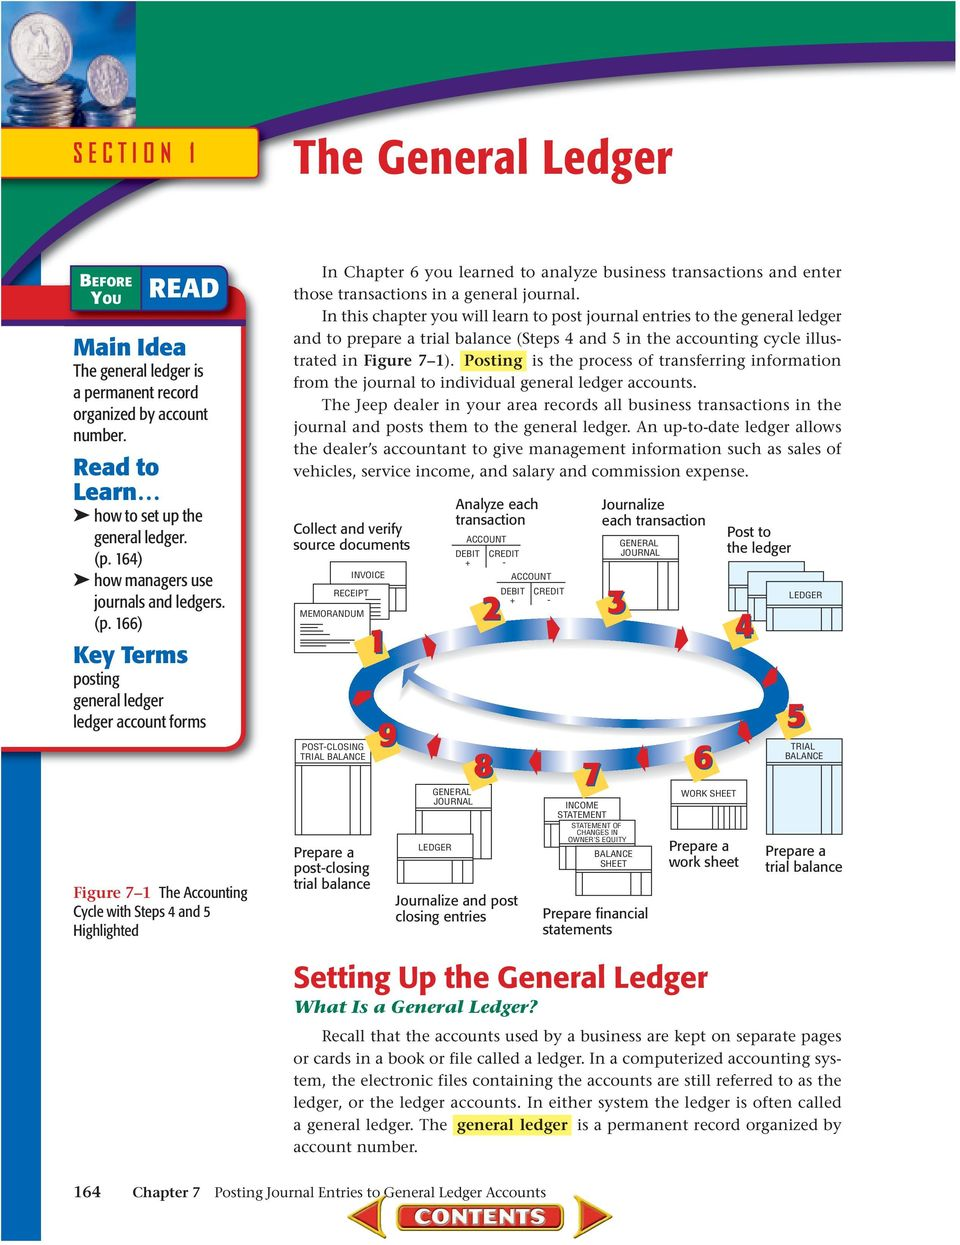 66) Key Terms posting general ledger ledger account forms Figure 7 The Accounting Cycle with Steps 4 and 5 Highlighted In Chapter 6 you learned to analyze business transactions and enter those